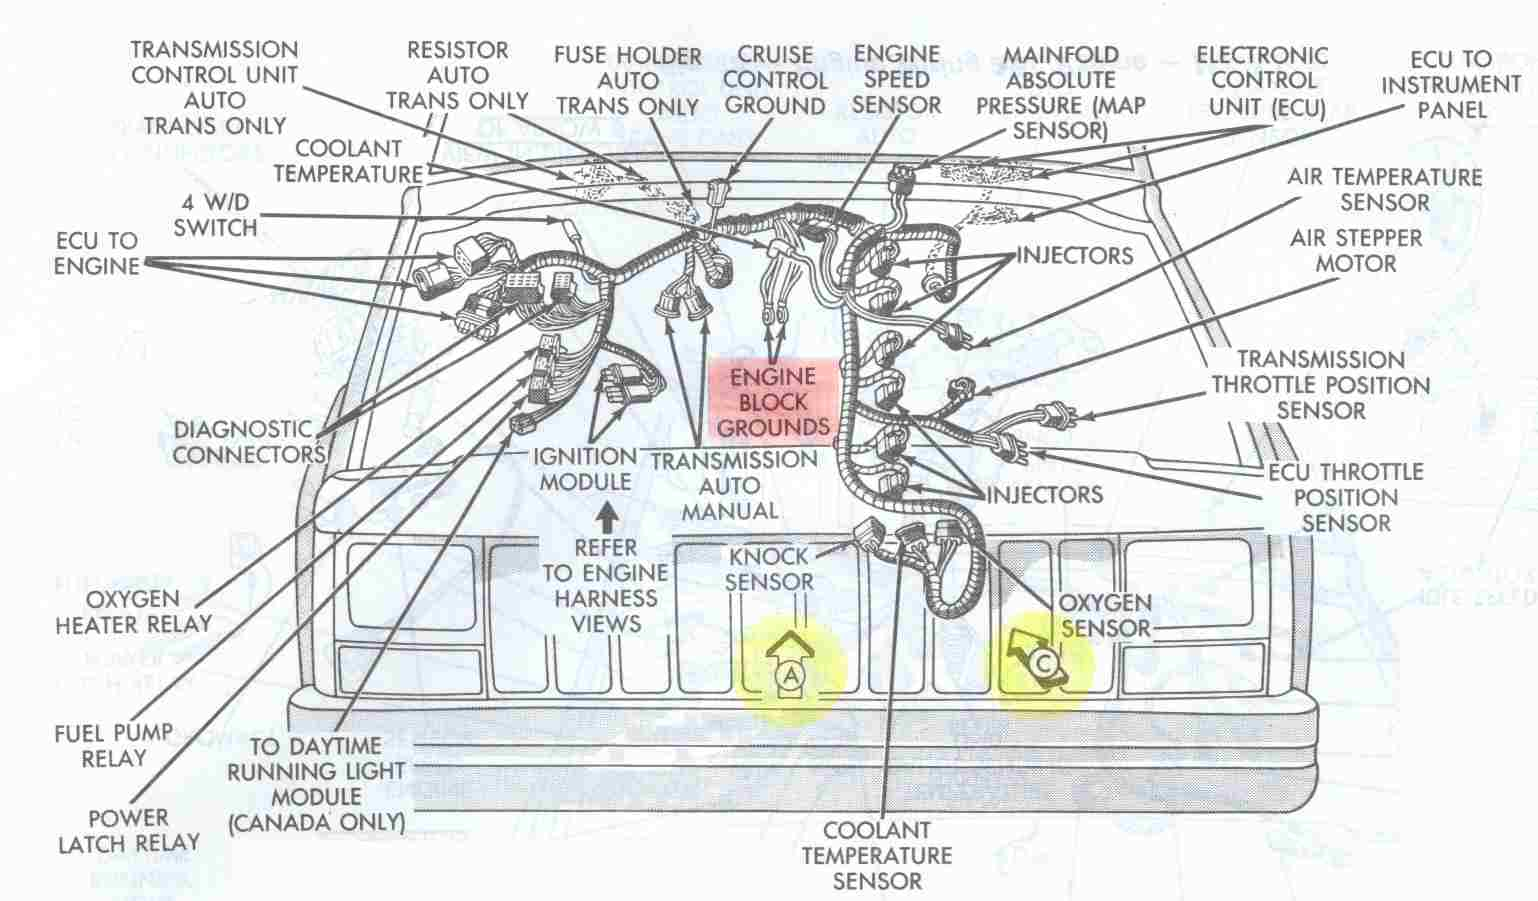 Electrical_Engine_Ground_Points_Overview jeep cherokee electrical diagnosing erratic behavior of engine 94 jeep cherokee wiring diagram at honlapkeszites.co